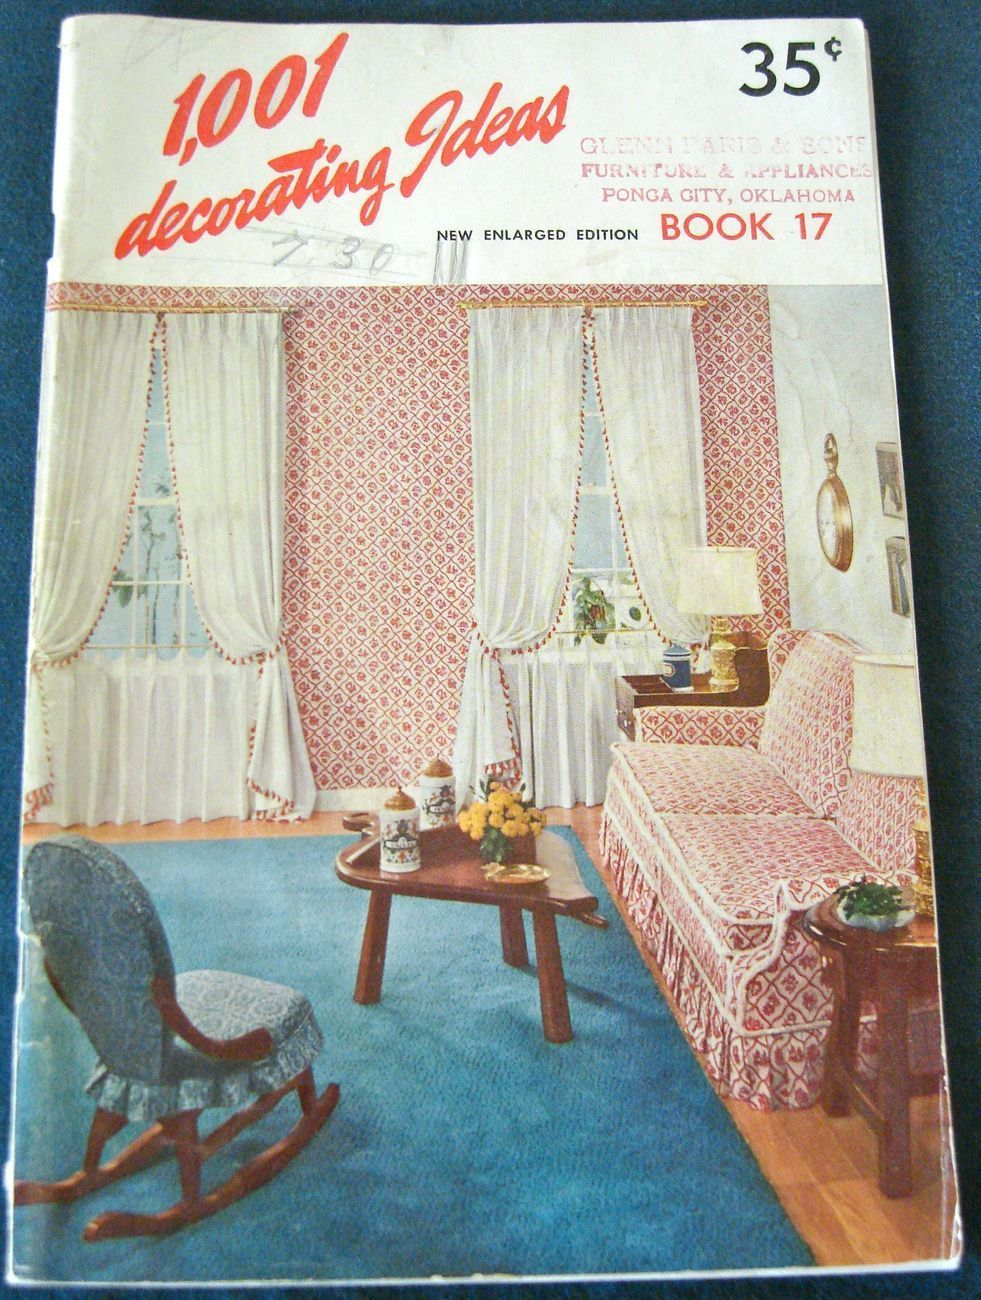 Vtg 1960 1001 Decorating Ideas Book 17 Sixties Style ...